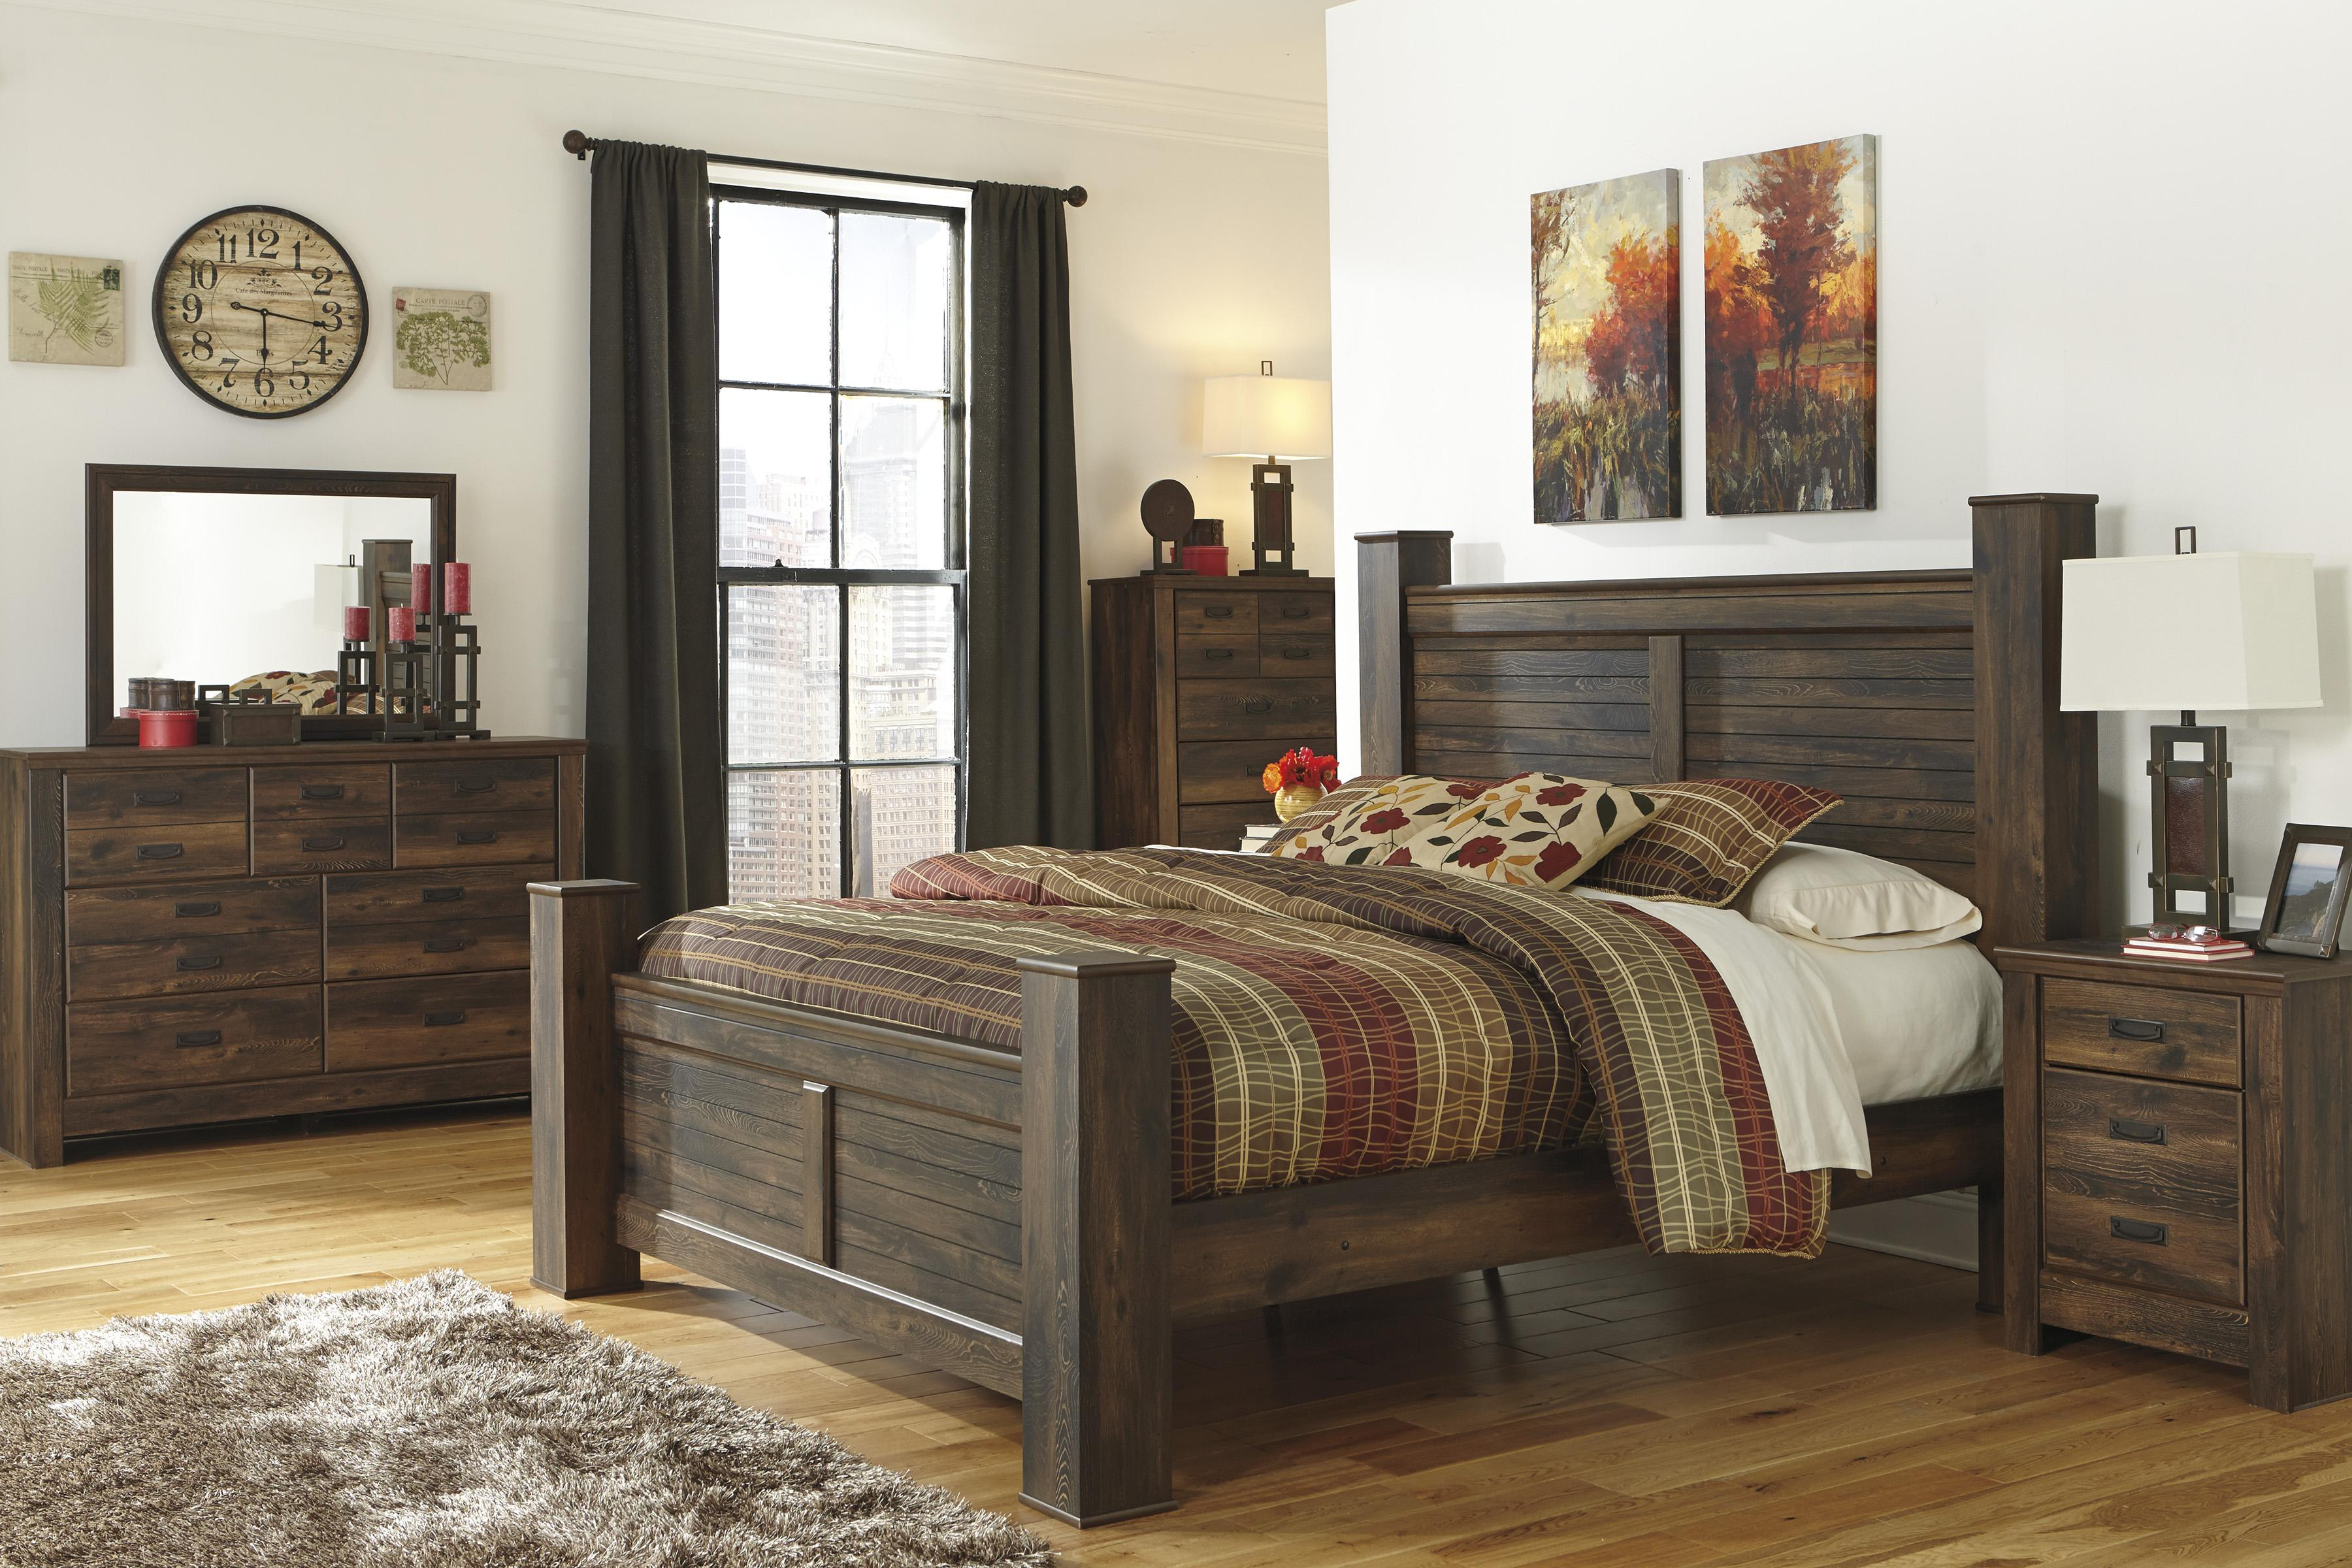 Quinden King Bedroom Group by Signature Design by Ashley at Furniture Barn